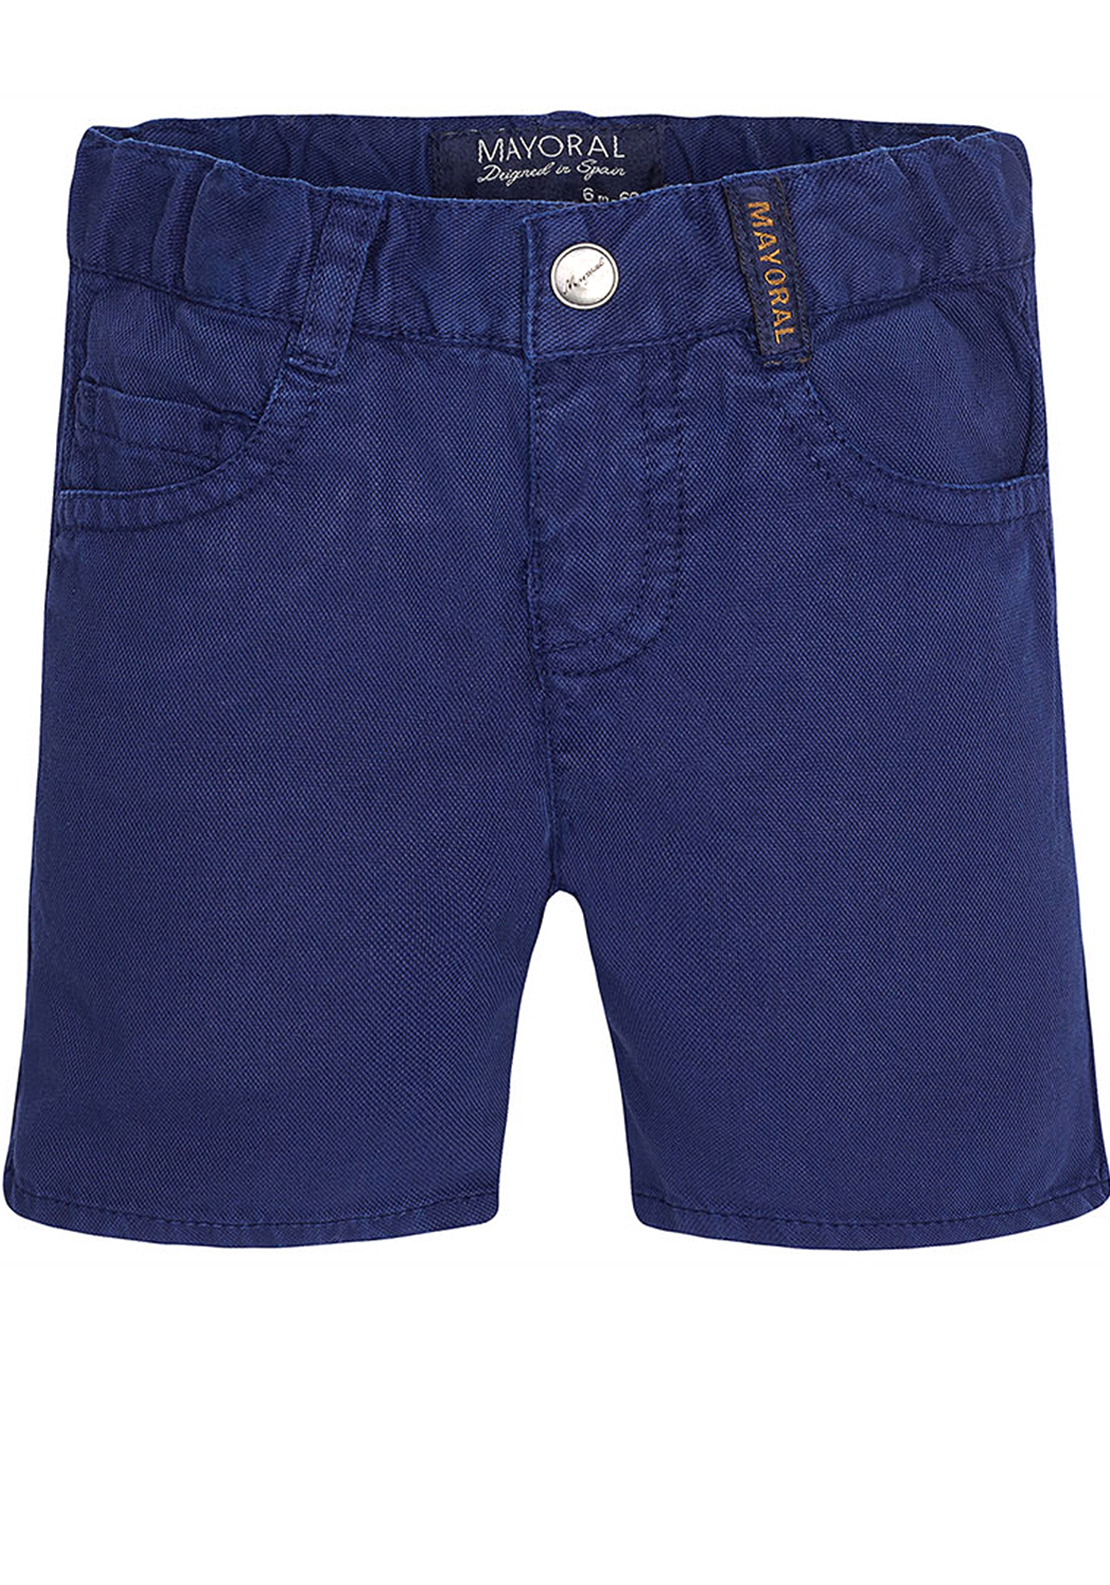 Mayoral Baby Boys Cotton Shorts, Navy